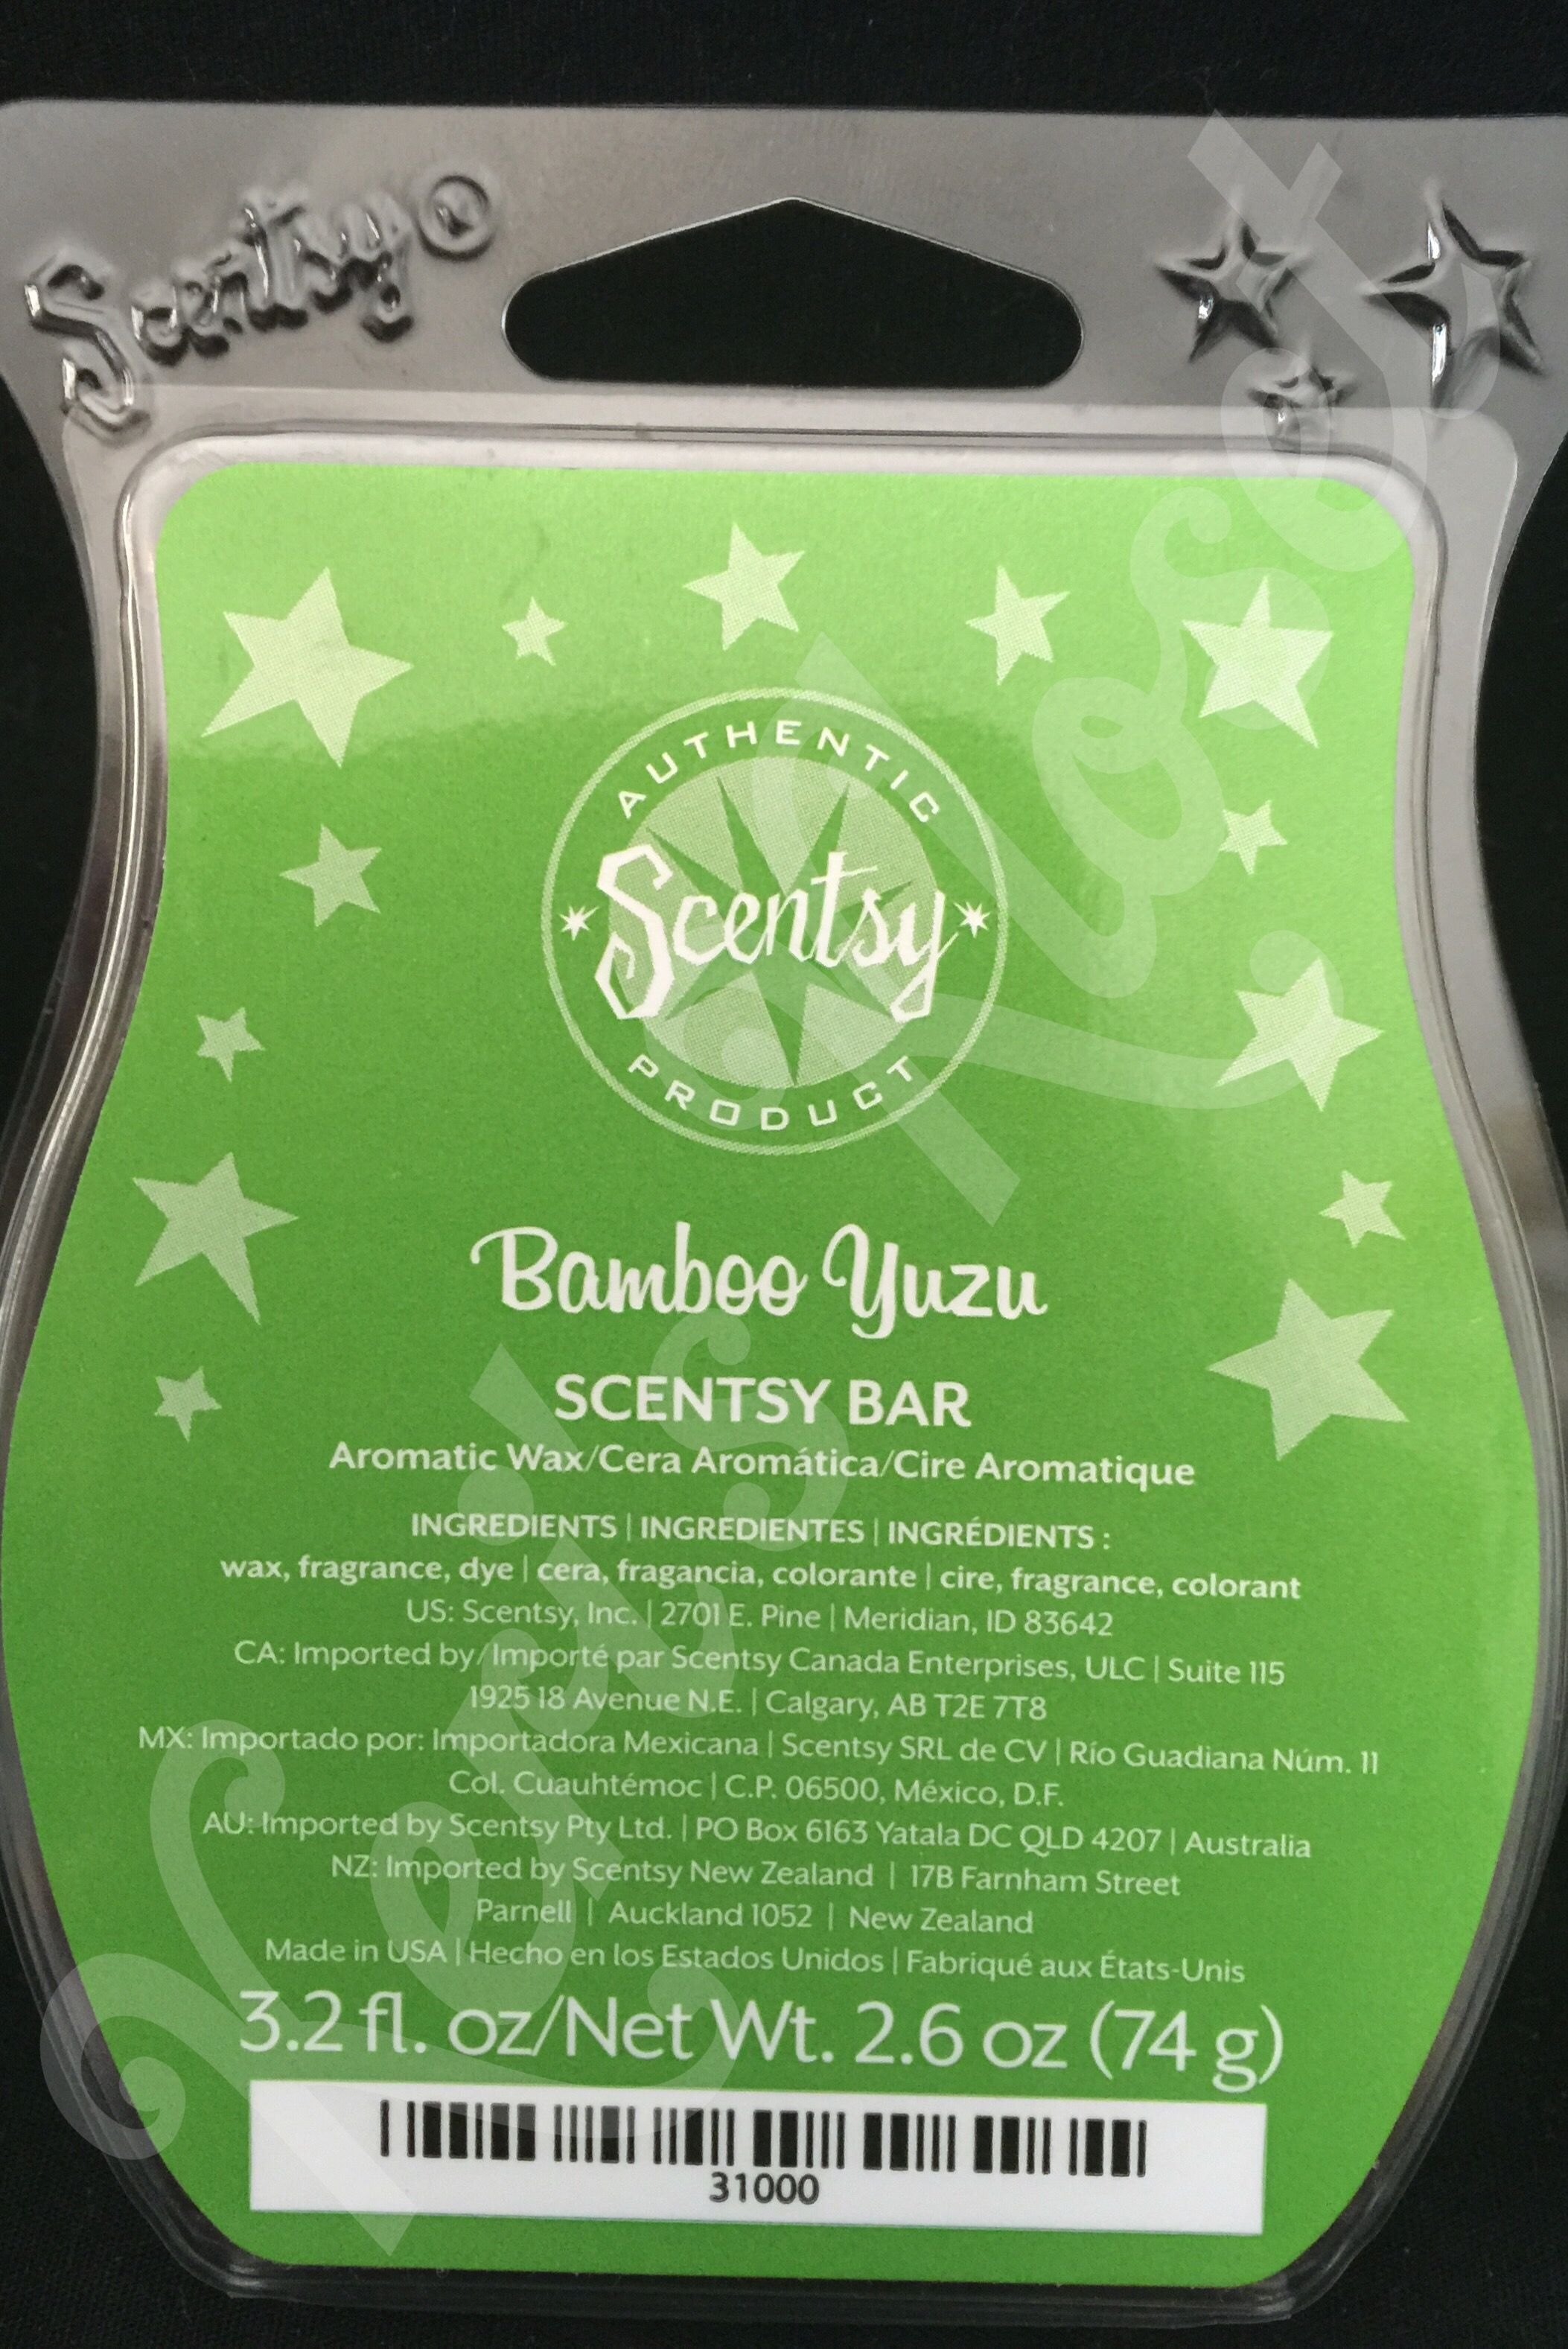 Scentsy bamboo yuzu imagine a japanese garden as you breathe in lotus flowers scentsy bamboo yuzu imagine a japanese garden as you breathe in dewy bamboo izmirmasajfo